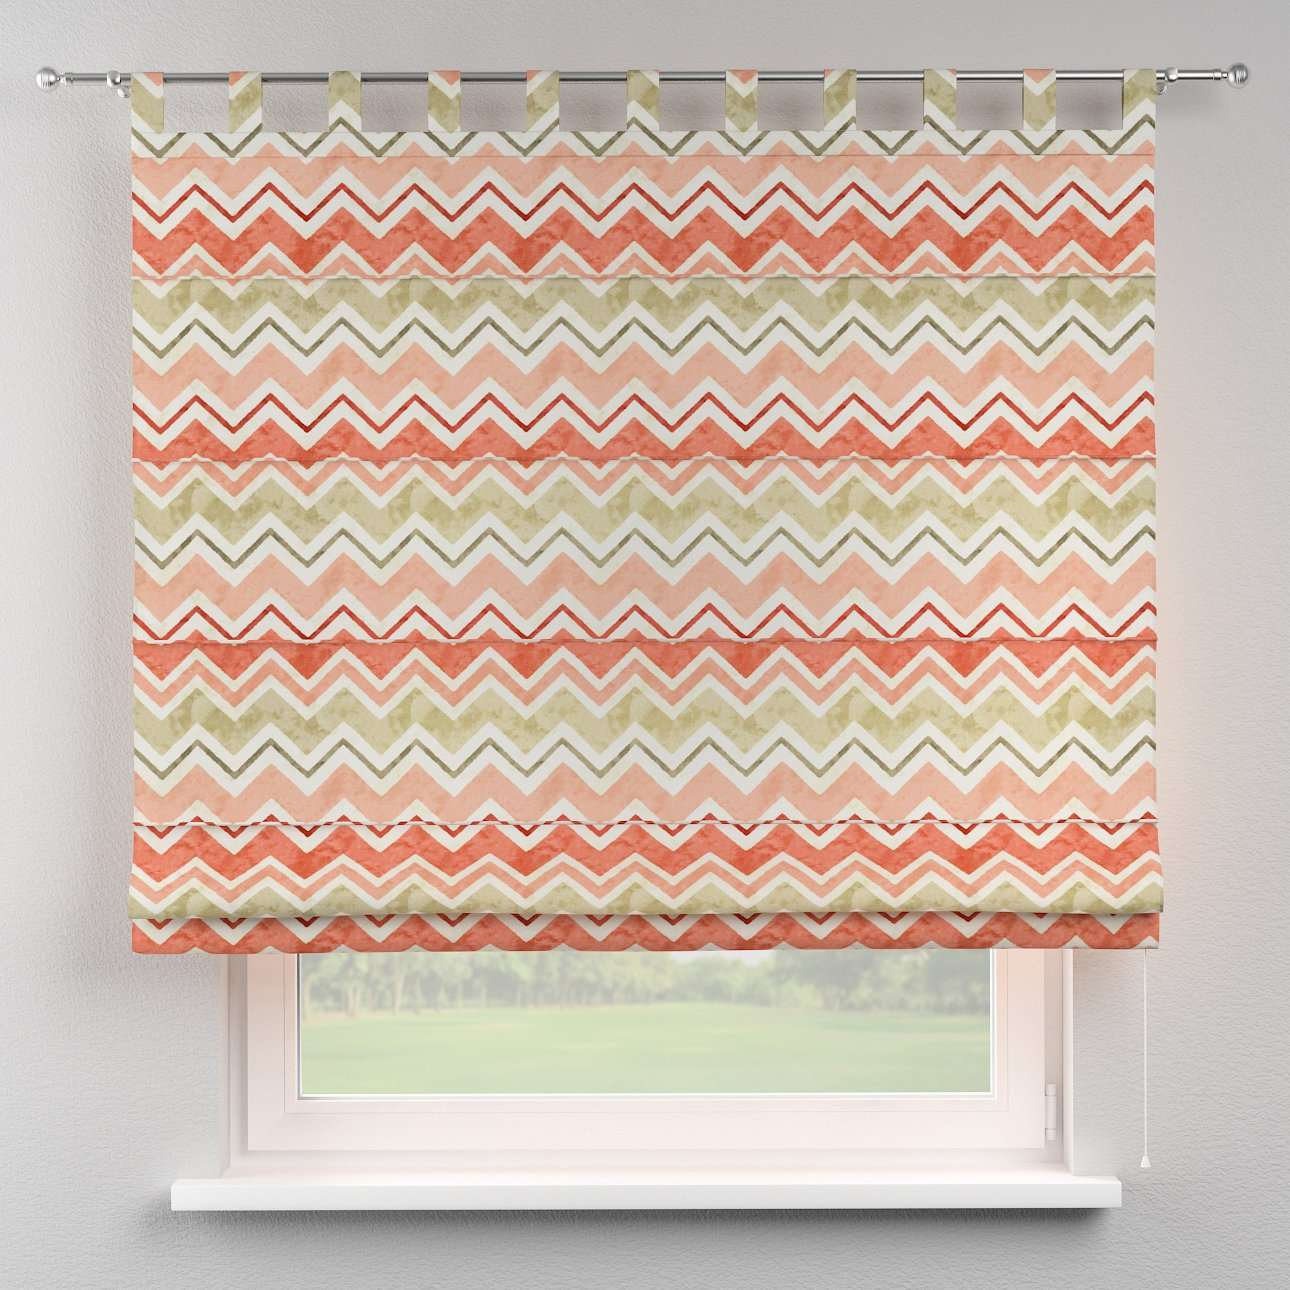 Verona tab top roman blind 80 x 170 cm (31.5 x 67 inch) in collection Acapulco, fabric: 141-40